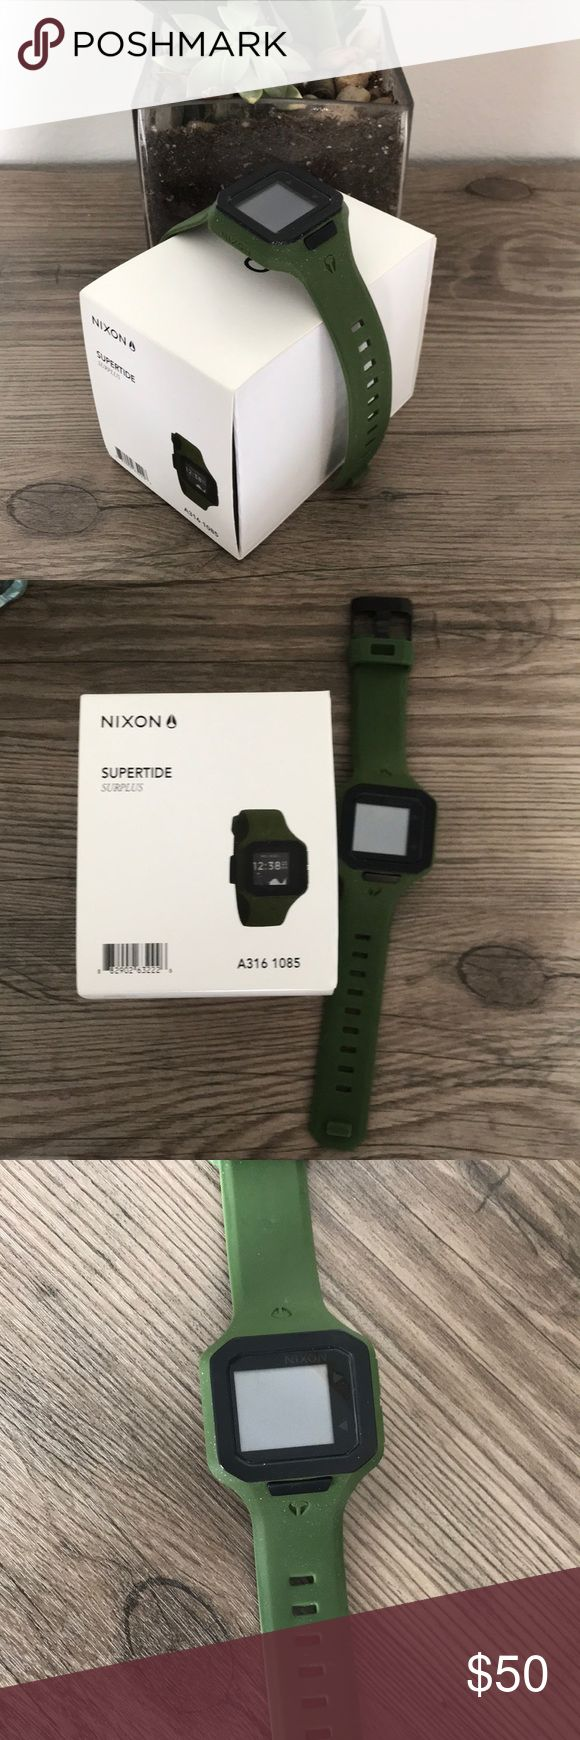 Nixon Supertide army green digital sports watch This Nixon watch is perfect for gifting! This digital watch has an army green silicone band, and can track tides, sunrise/sunset and more! Surfs up! Original packaging included. Watch will require new battery. Nixon Accessories Watches